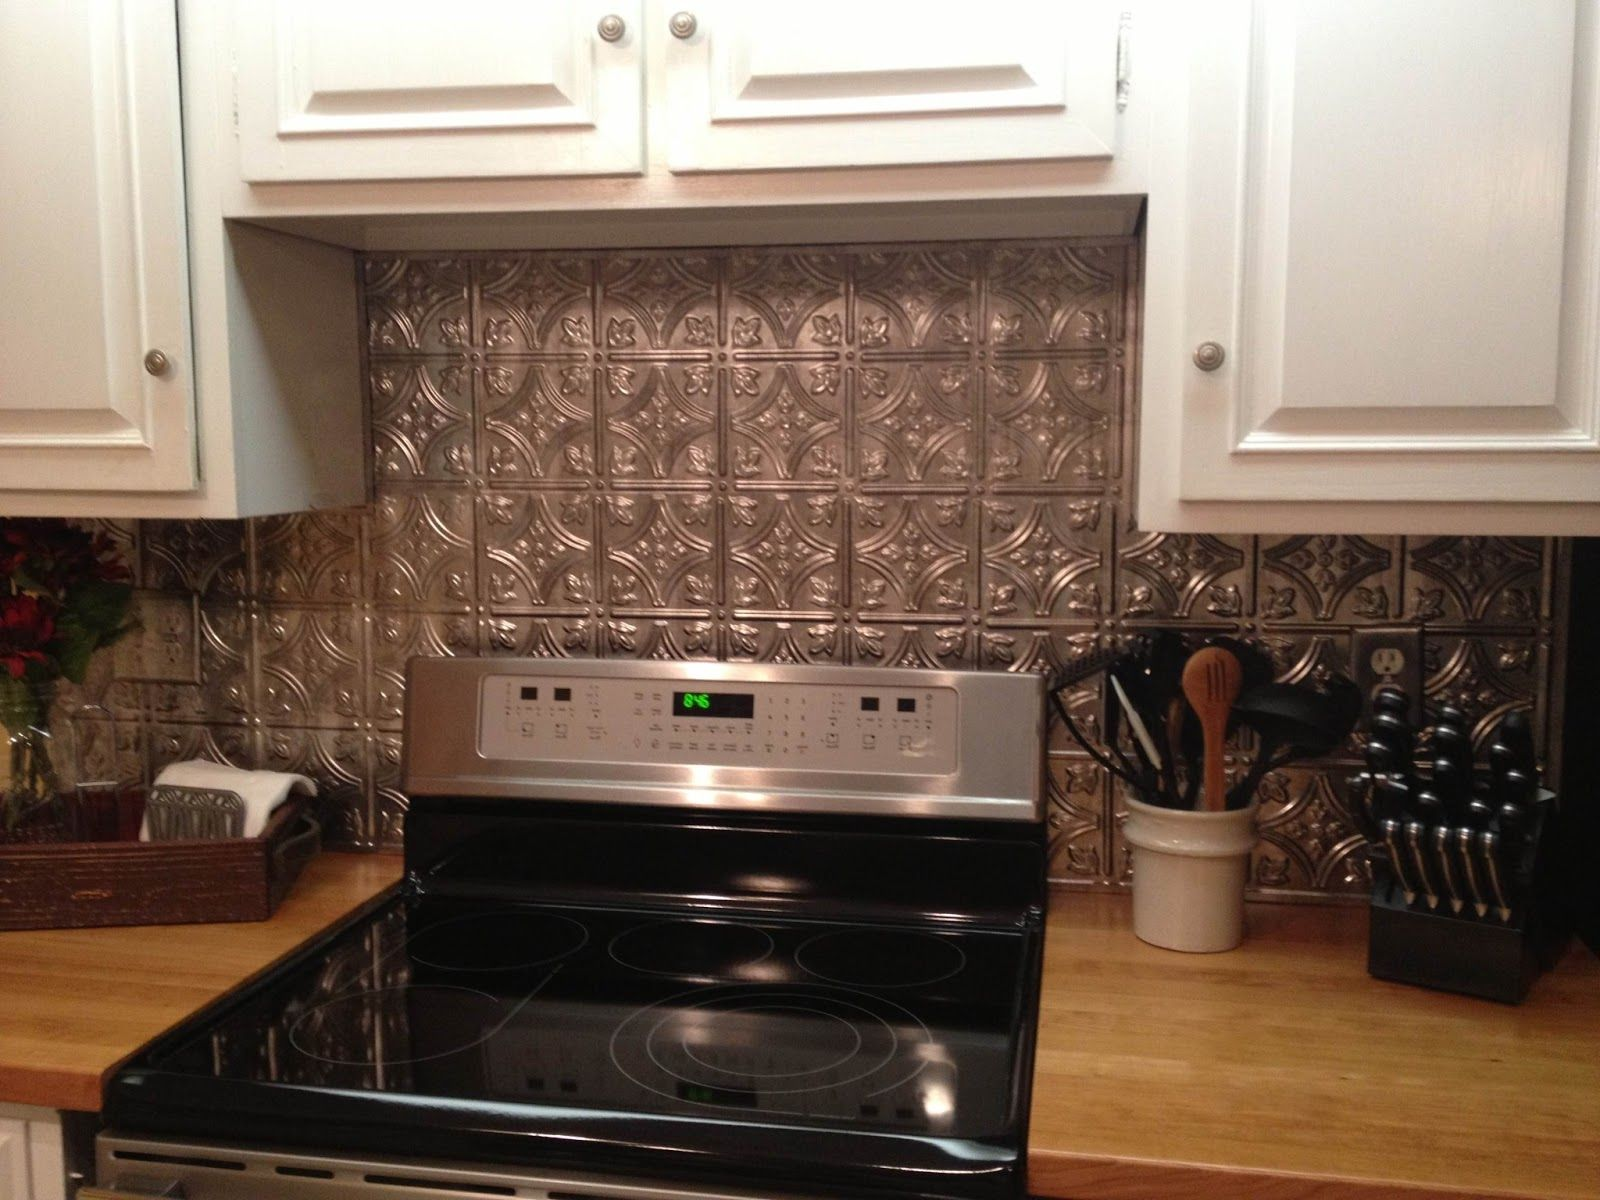 Great Cool Diy Faux Tin Kitchen Backsplash With Vase: Top 12 Faux Tin Kitchen  Backsplash Ideas